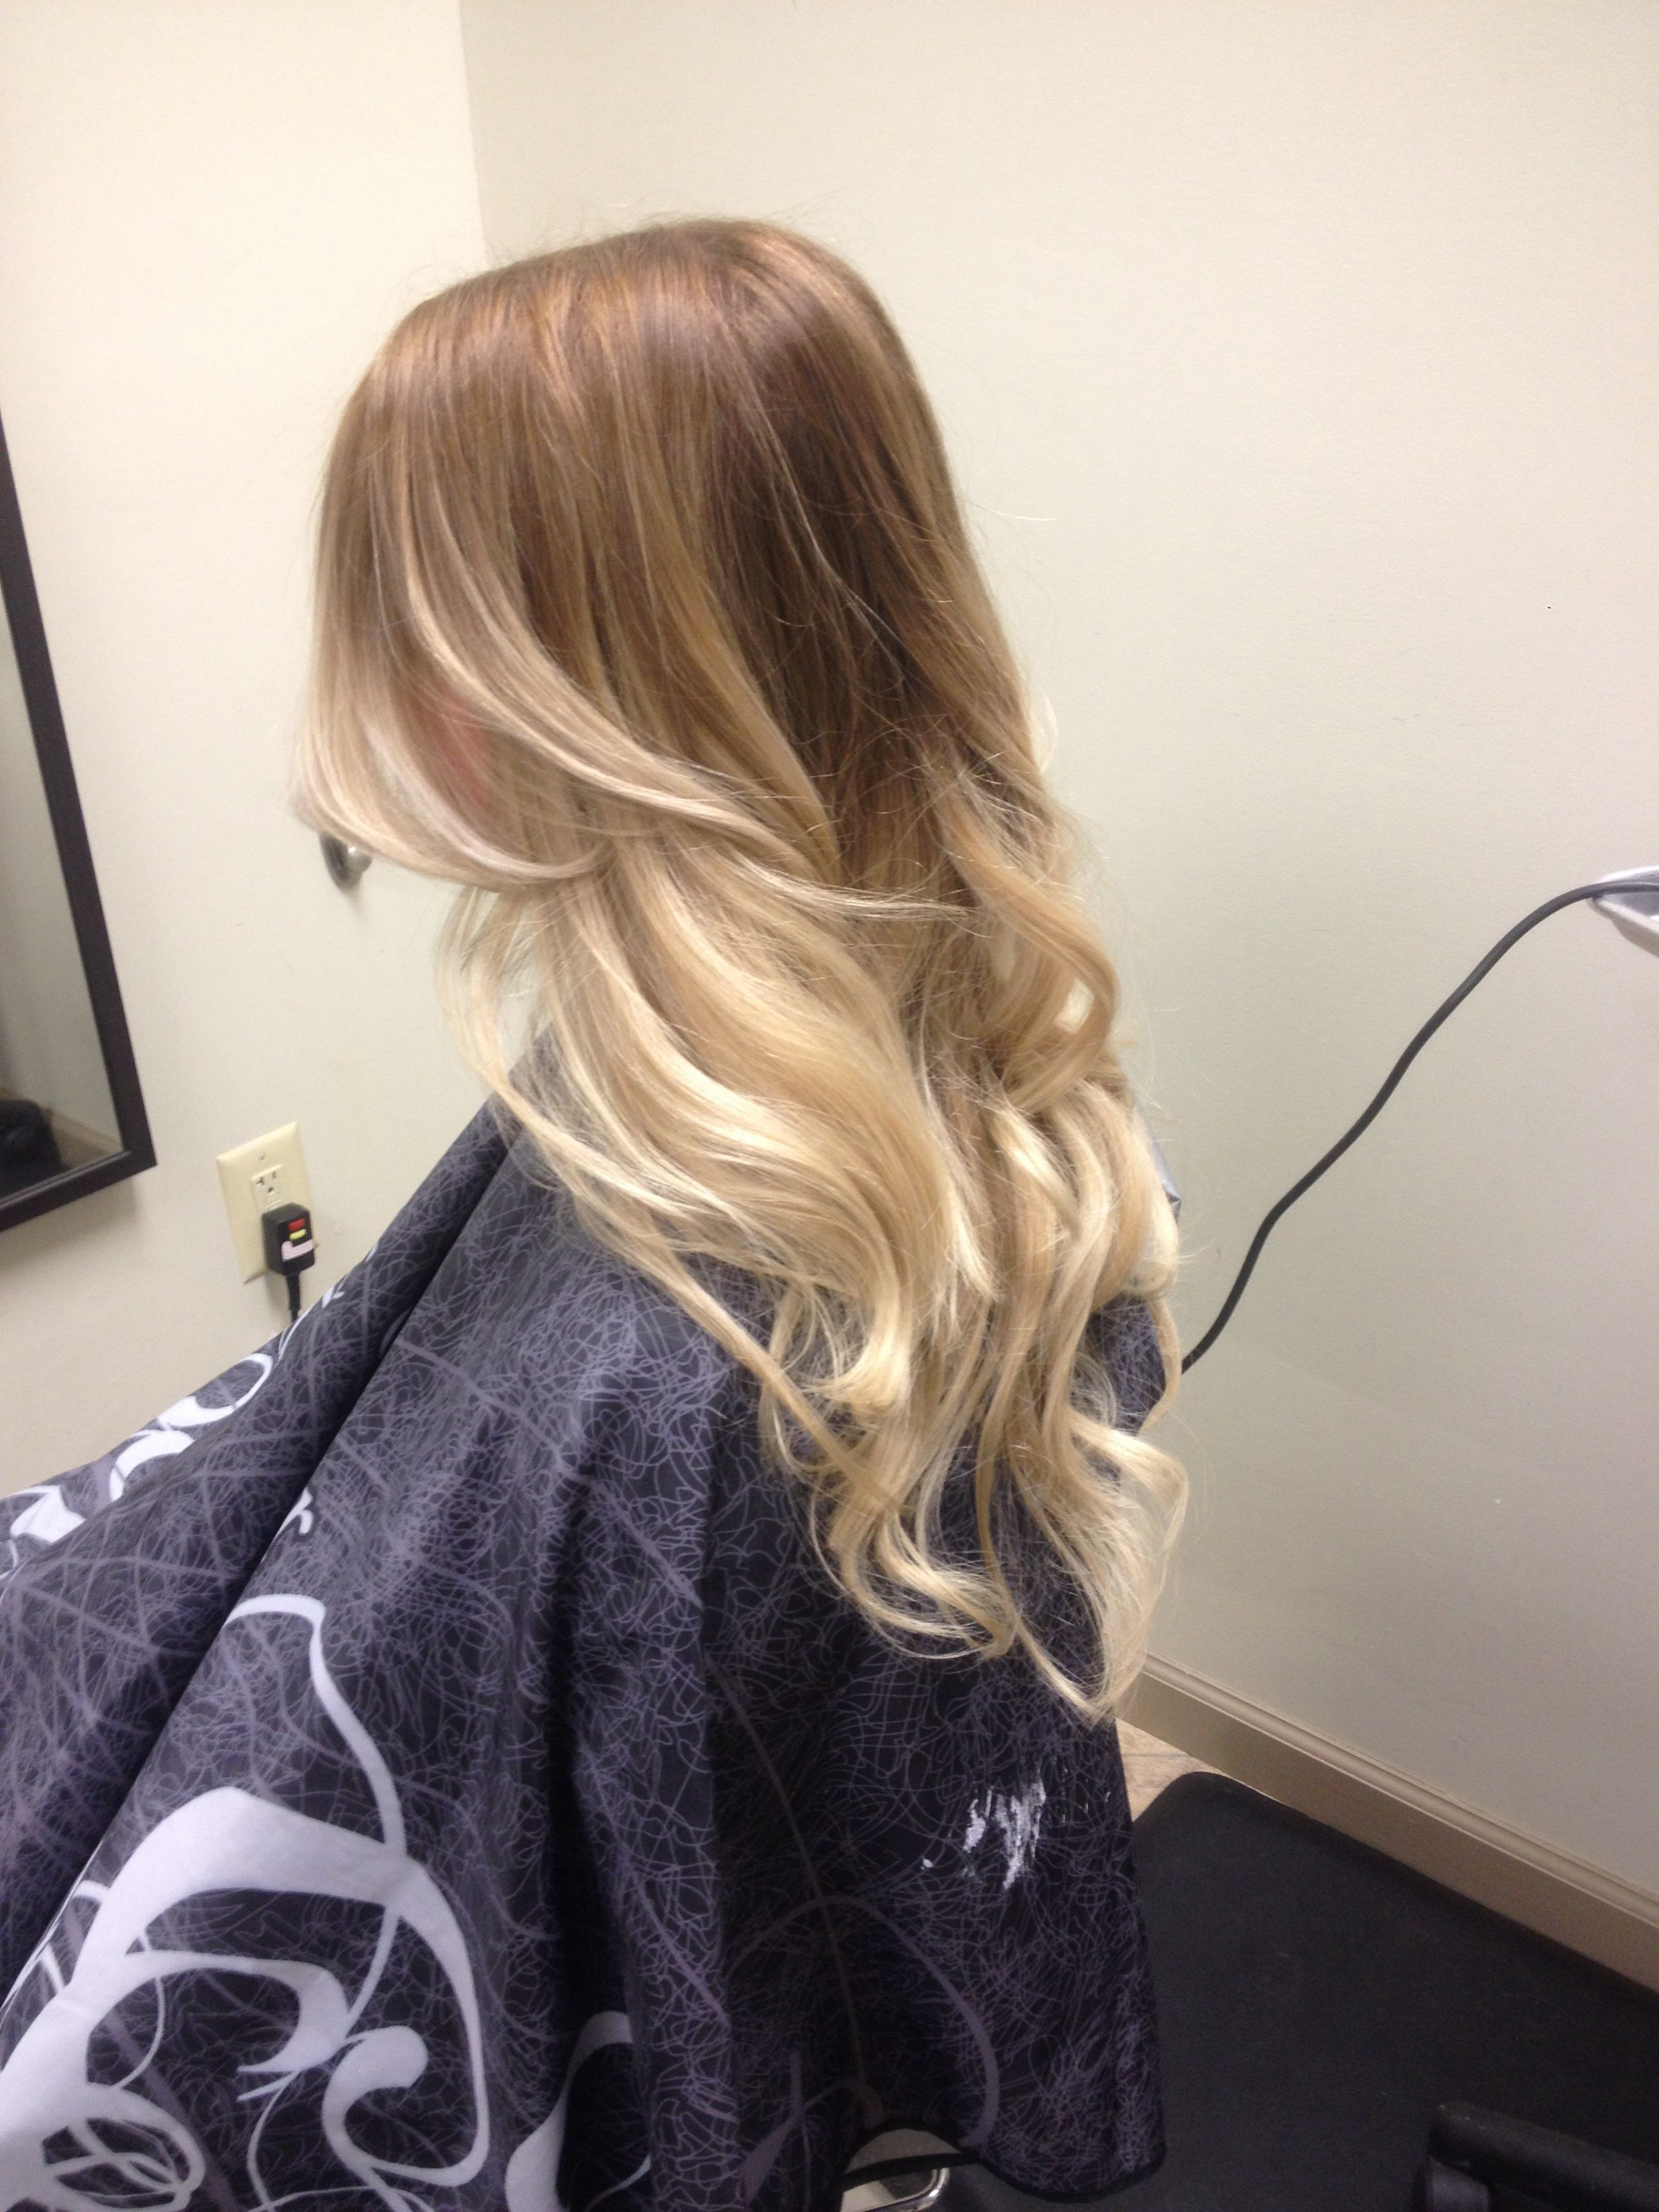 lauren conrad inspired ombre hair i did on my client